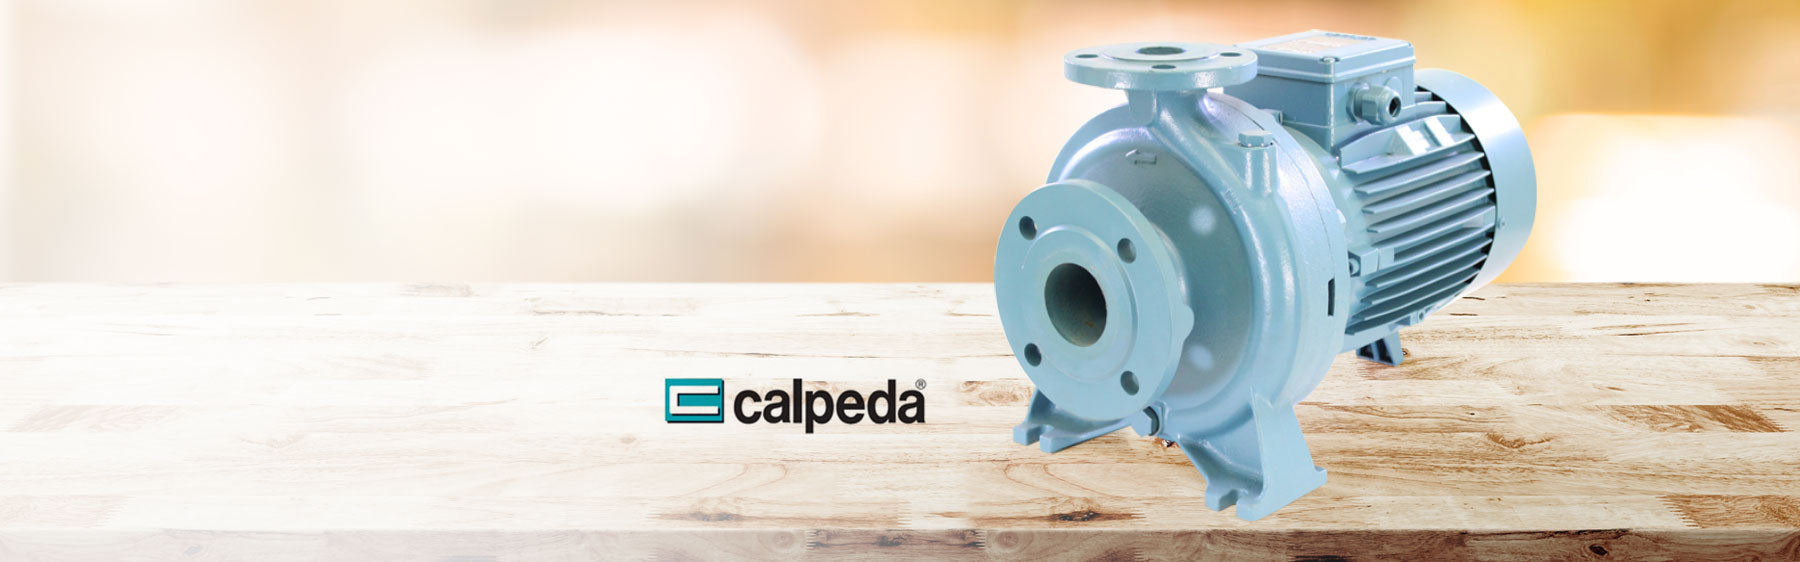 Calpeda Pumps Distributor